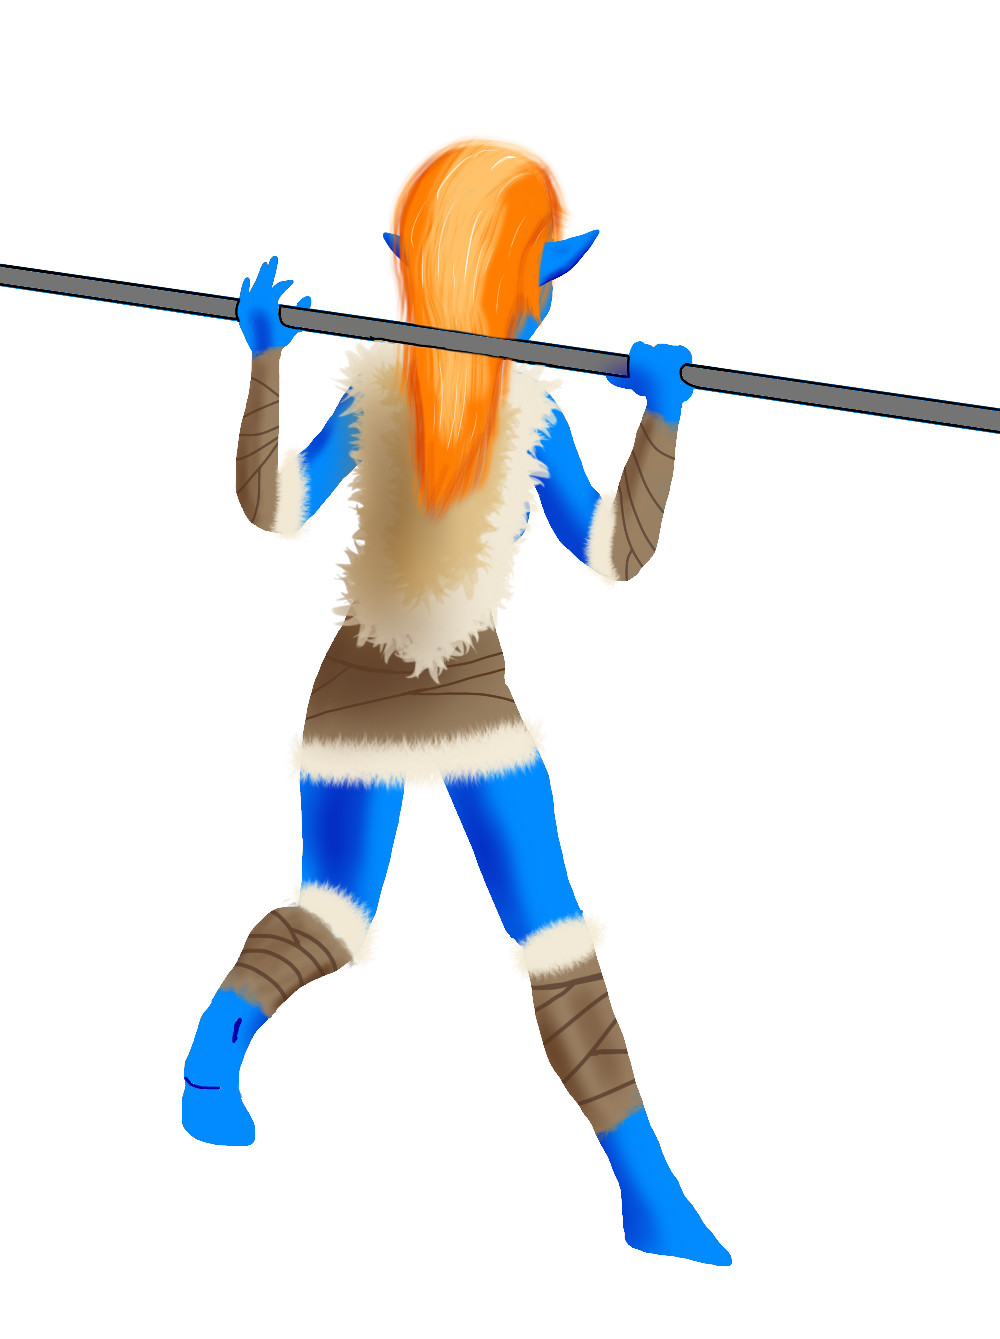 PNG of the vaulter character